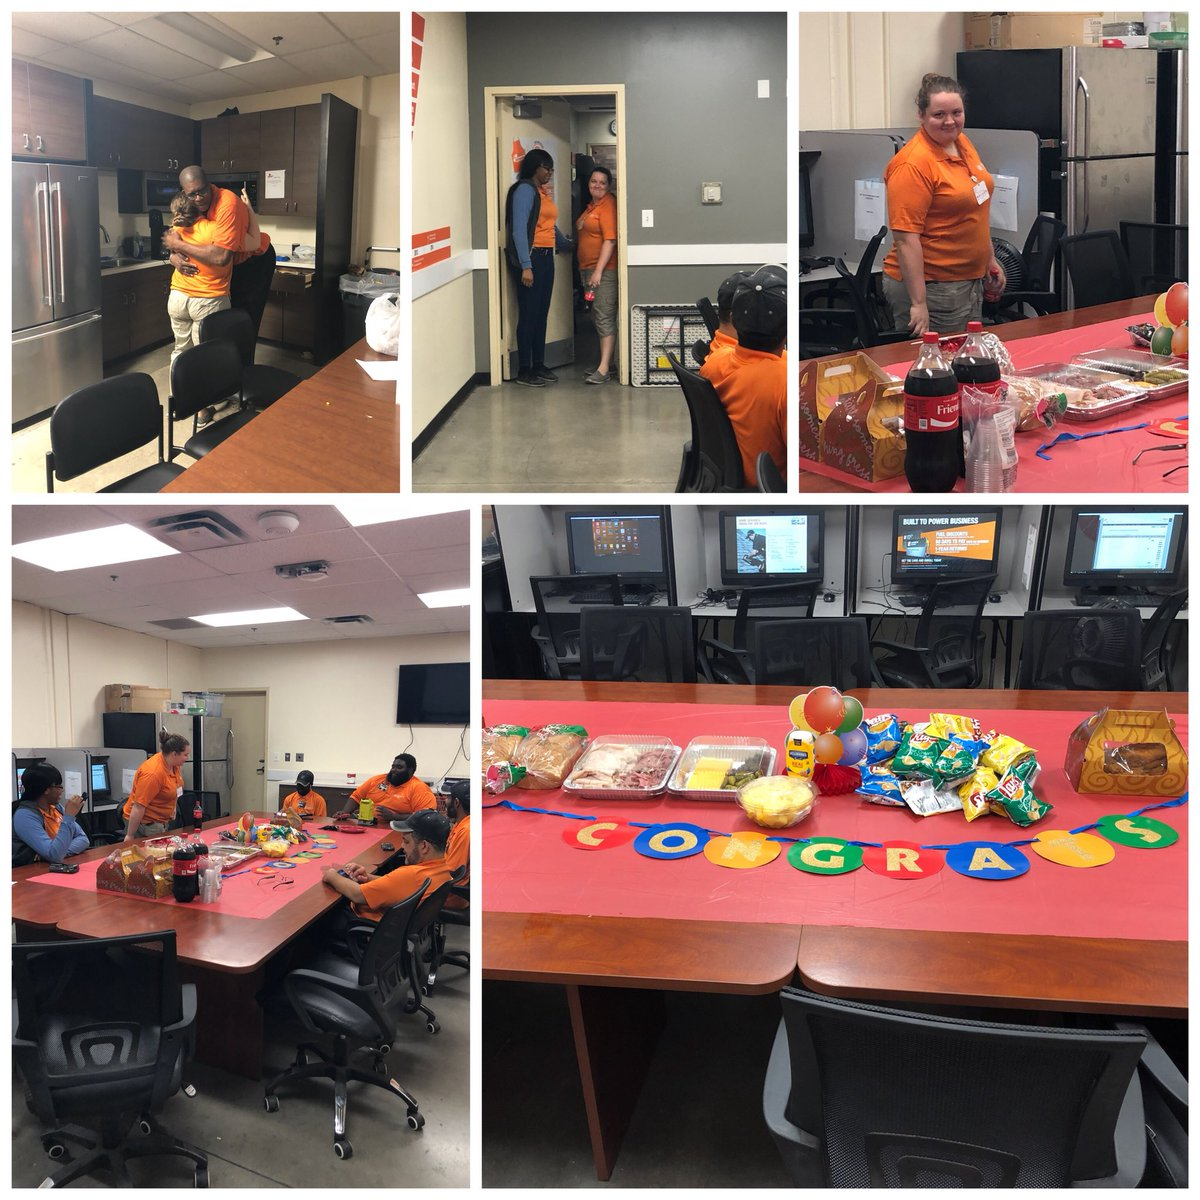 Congratulations Brooke on your promotion to MET supervisor, team Biscayne will miss you! Looking forward in watching your continued growth!